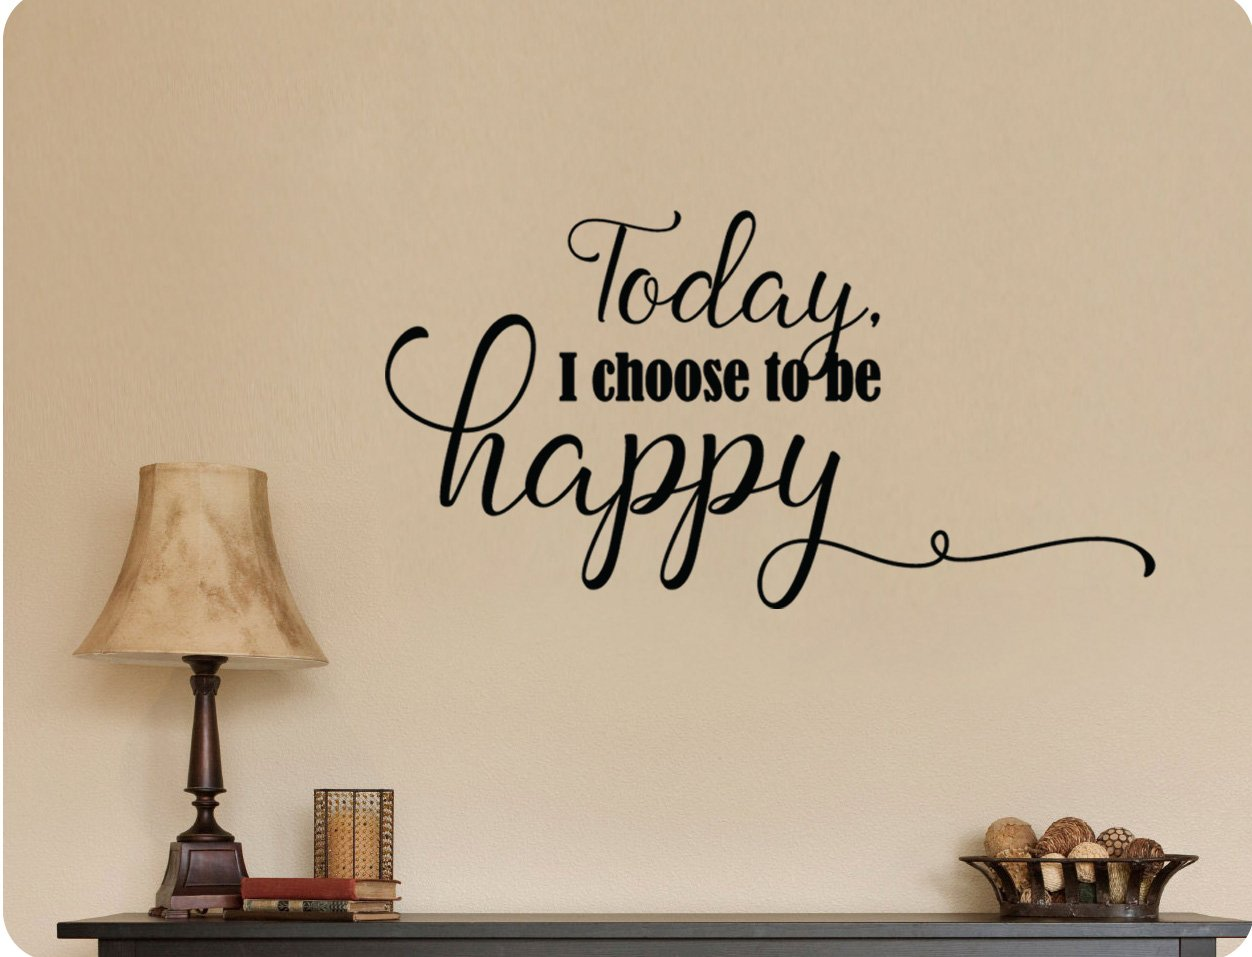 Amazon 24x12 Today I Choose To Be Happy Wall Decal Sticker